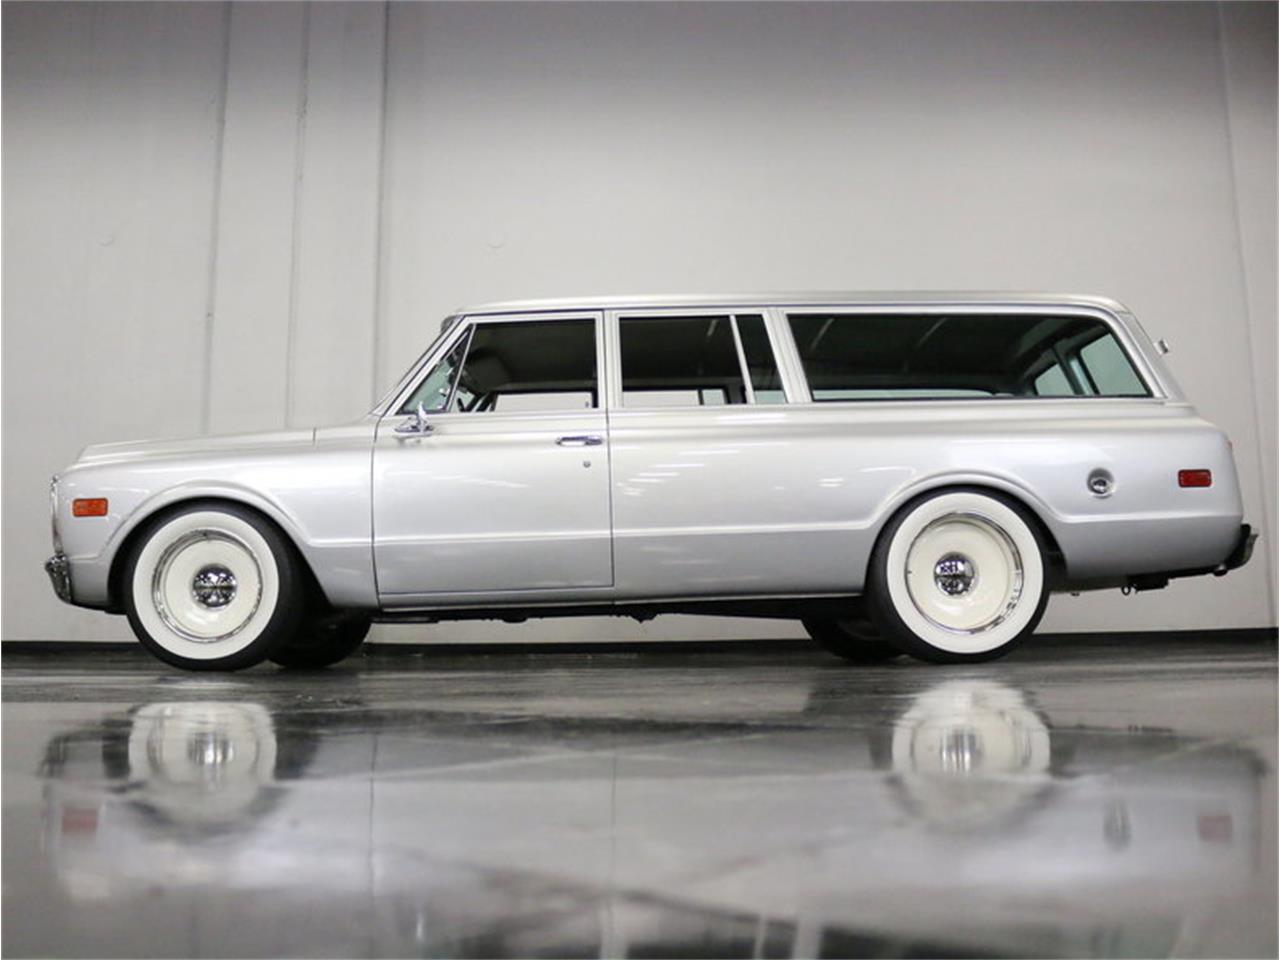 Large Picture of 1971 GMC Suburban located in Texas - $42,995.00 Offered by Streetside Classics - Dallas / Fort Worth - MOA7